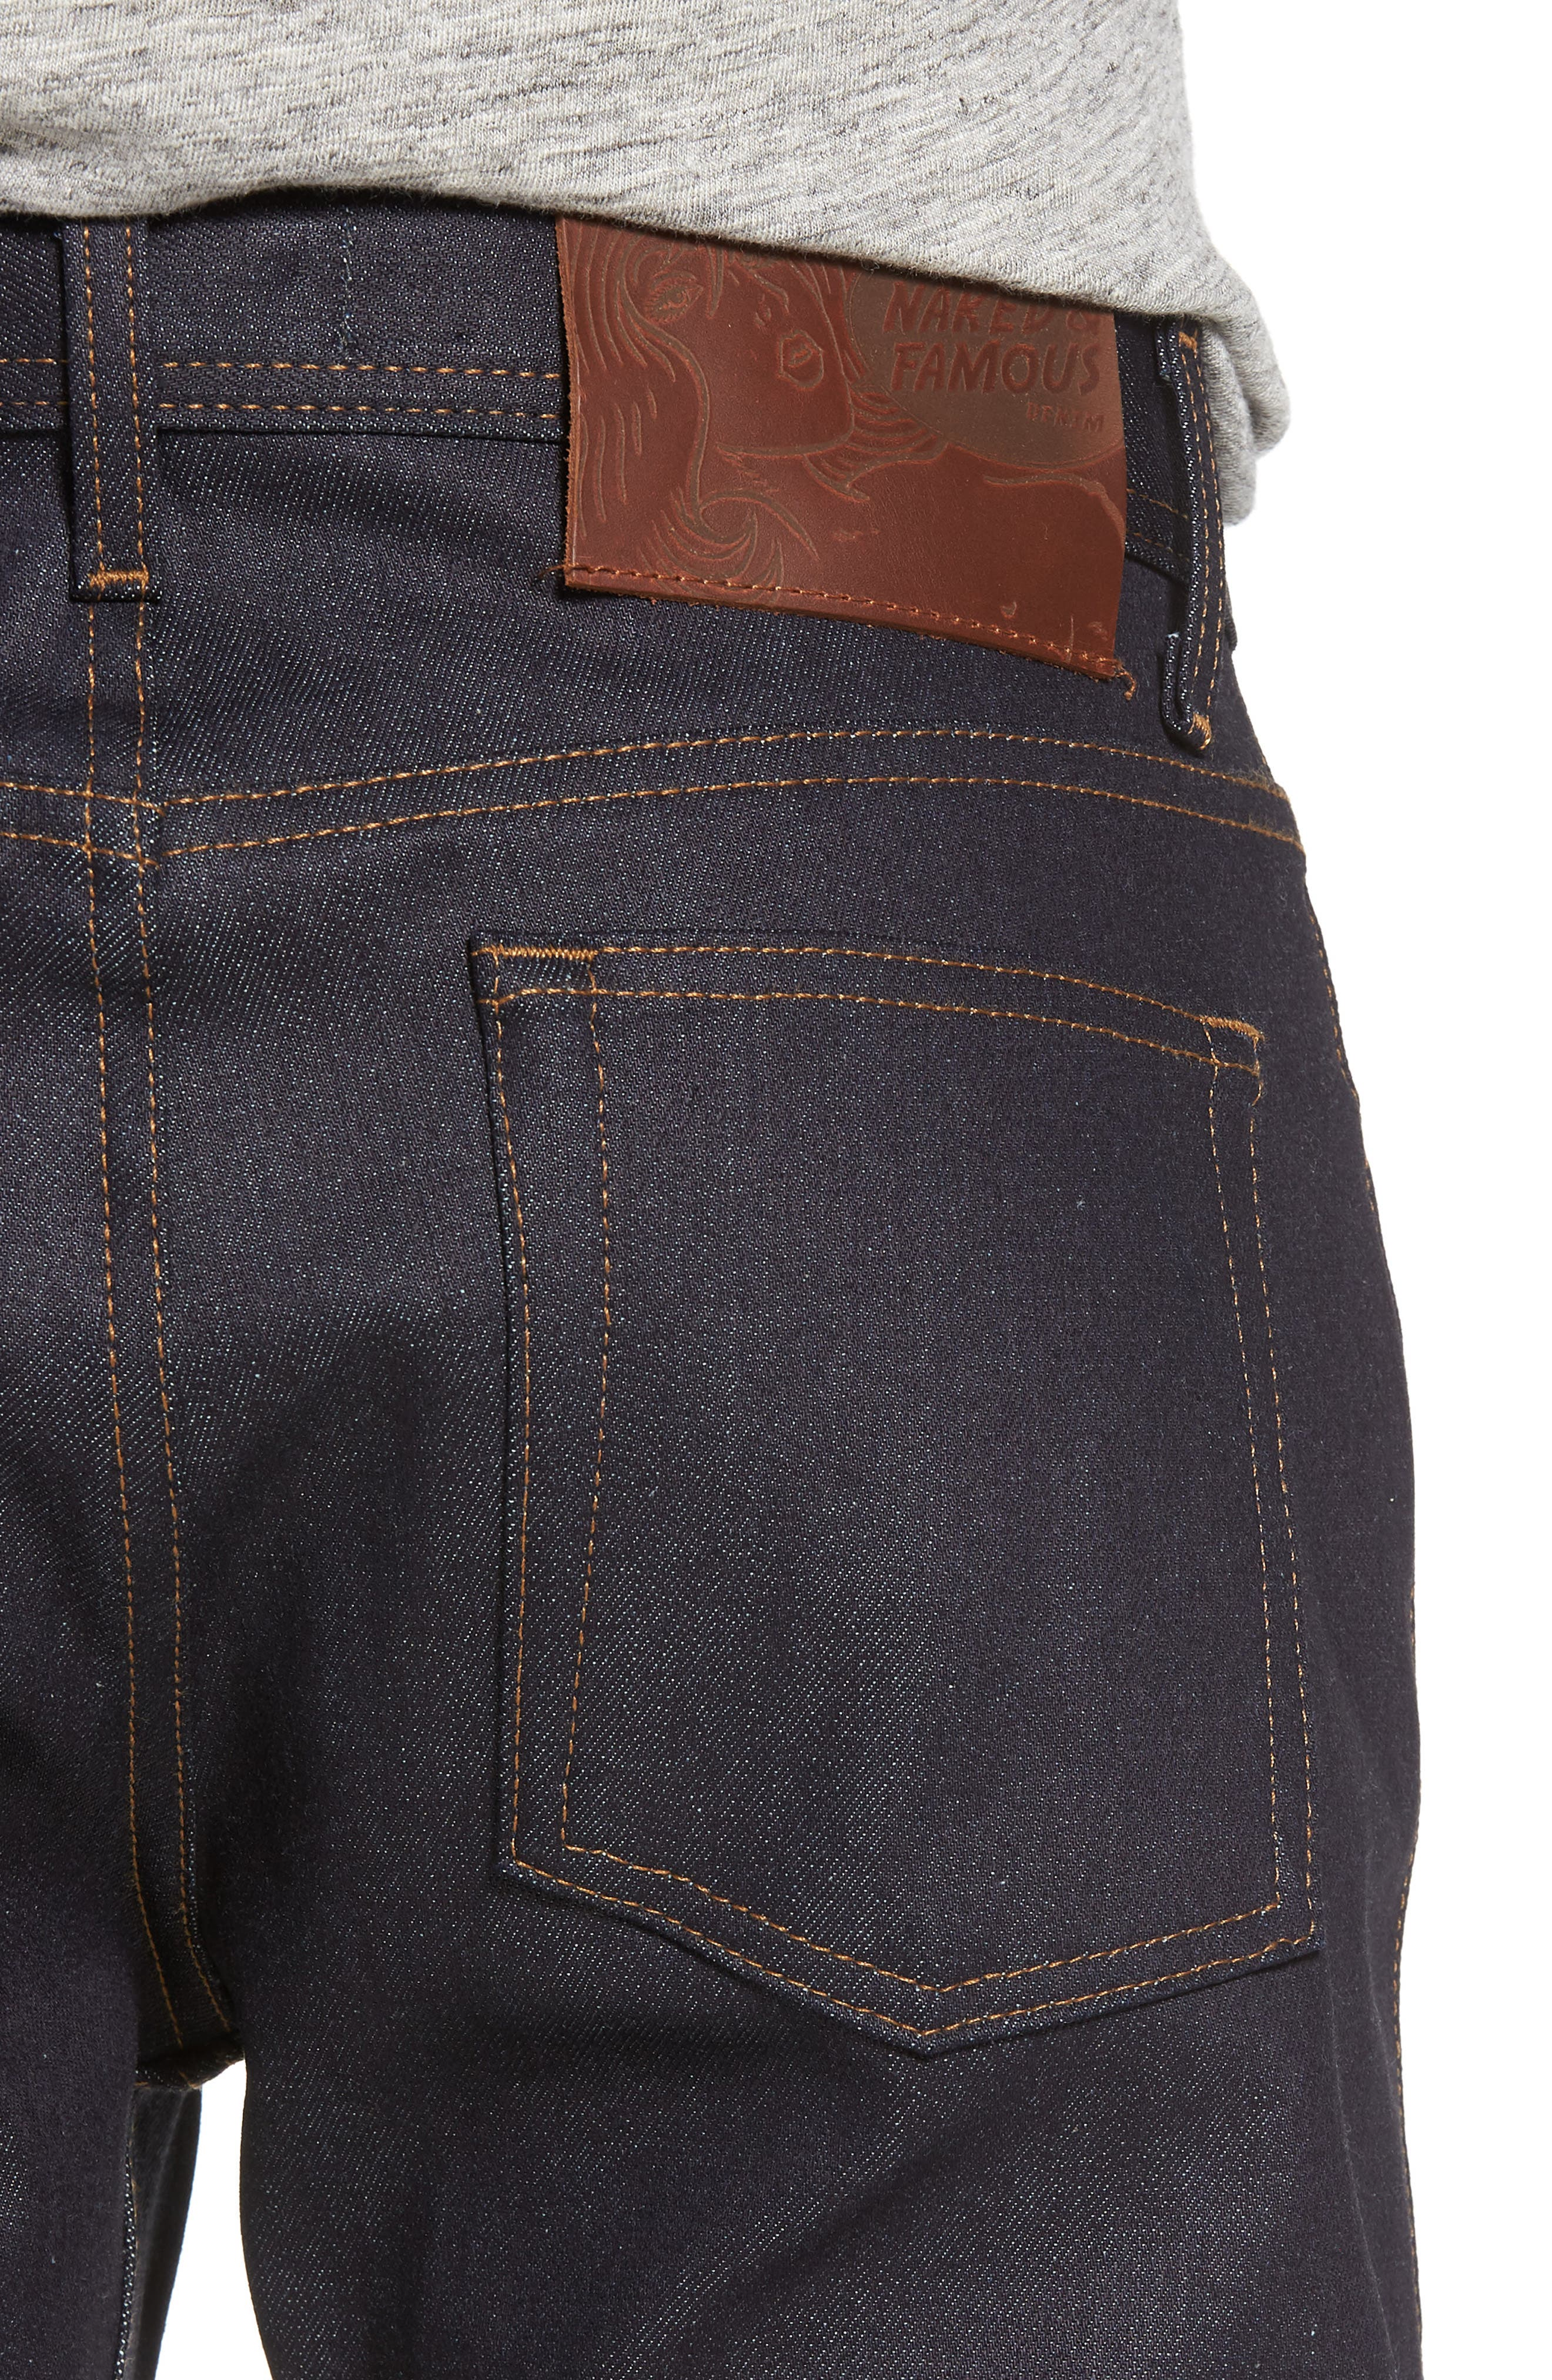 Naked & Famous Weird Guy Slim Fit Jeans,                             Alternate thumbnail 4, color,                             Indigo